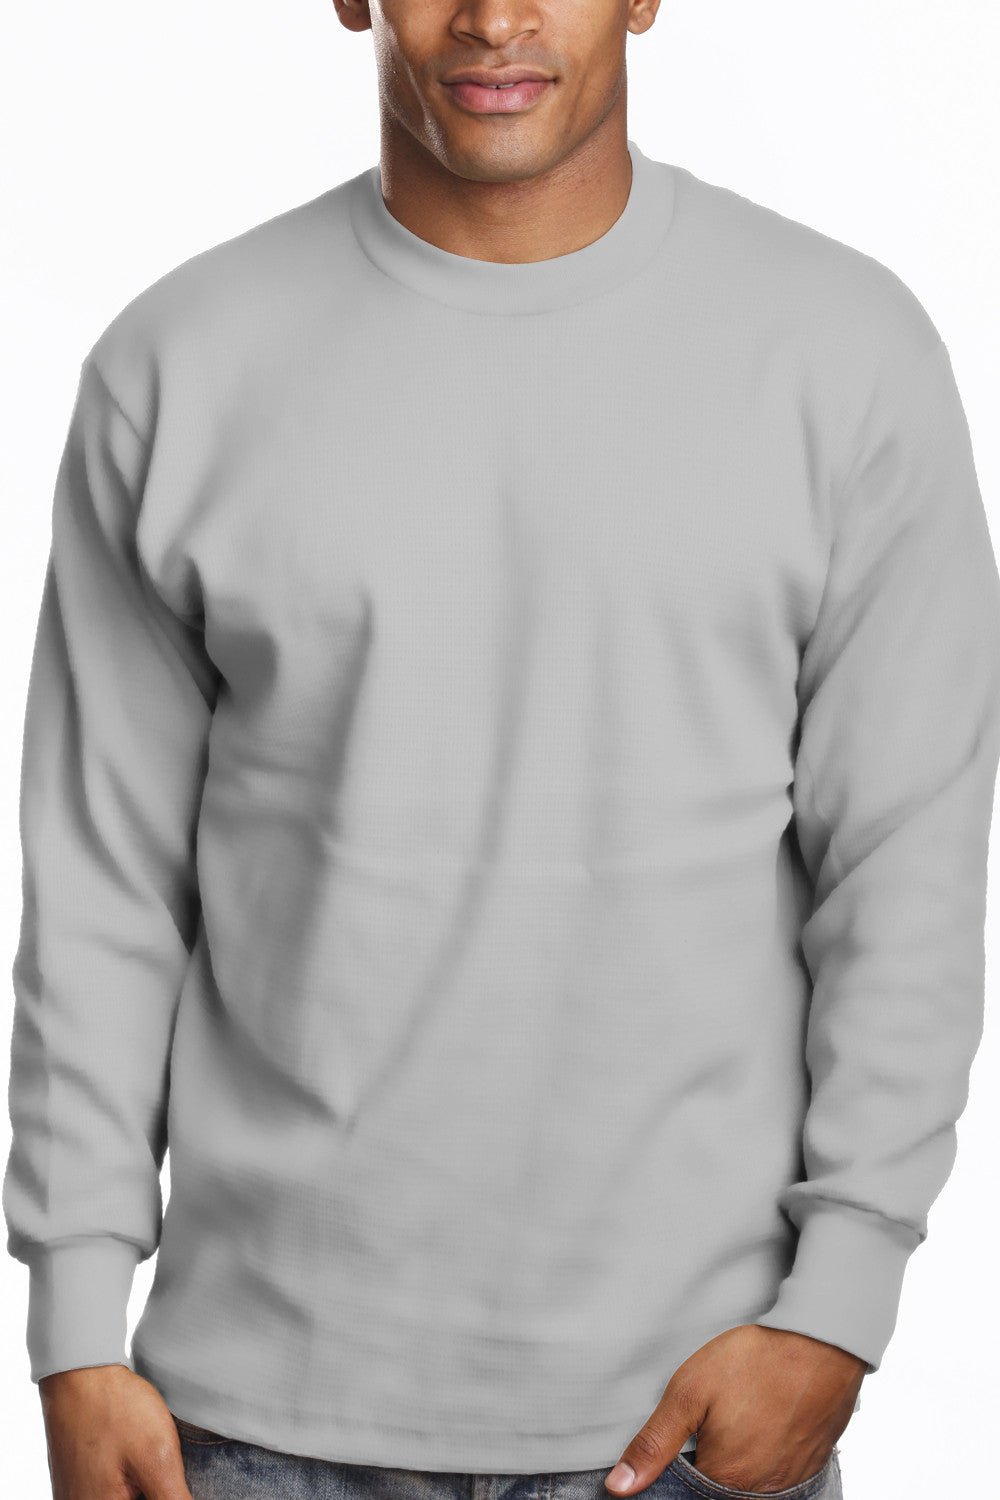 Mens Long Sleeve Super Heavy Shirt Heather Grey